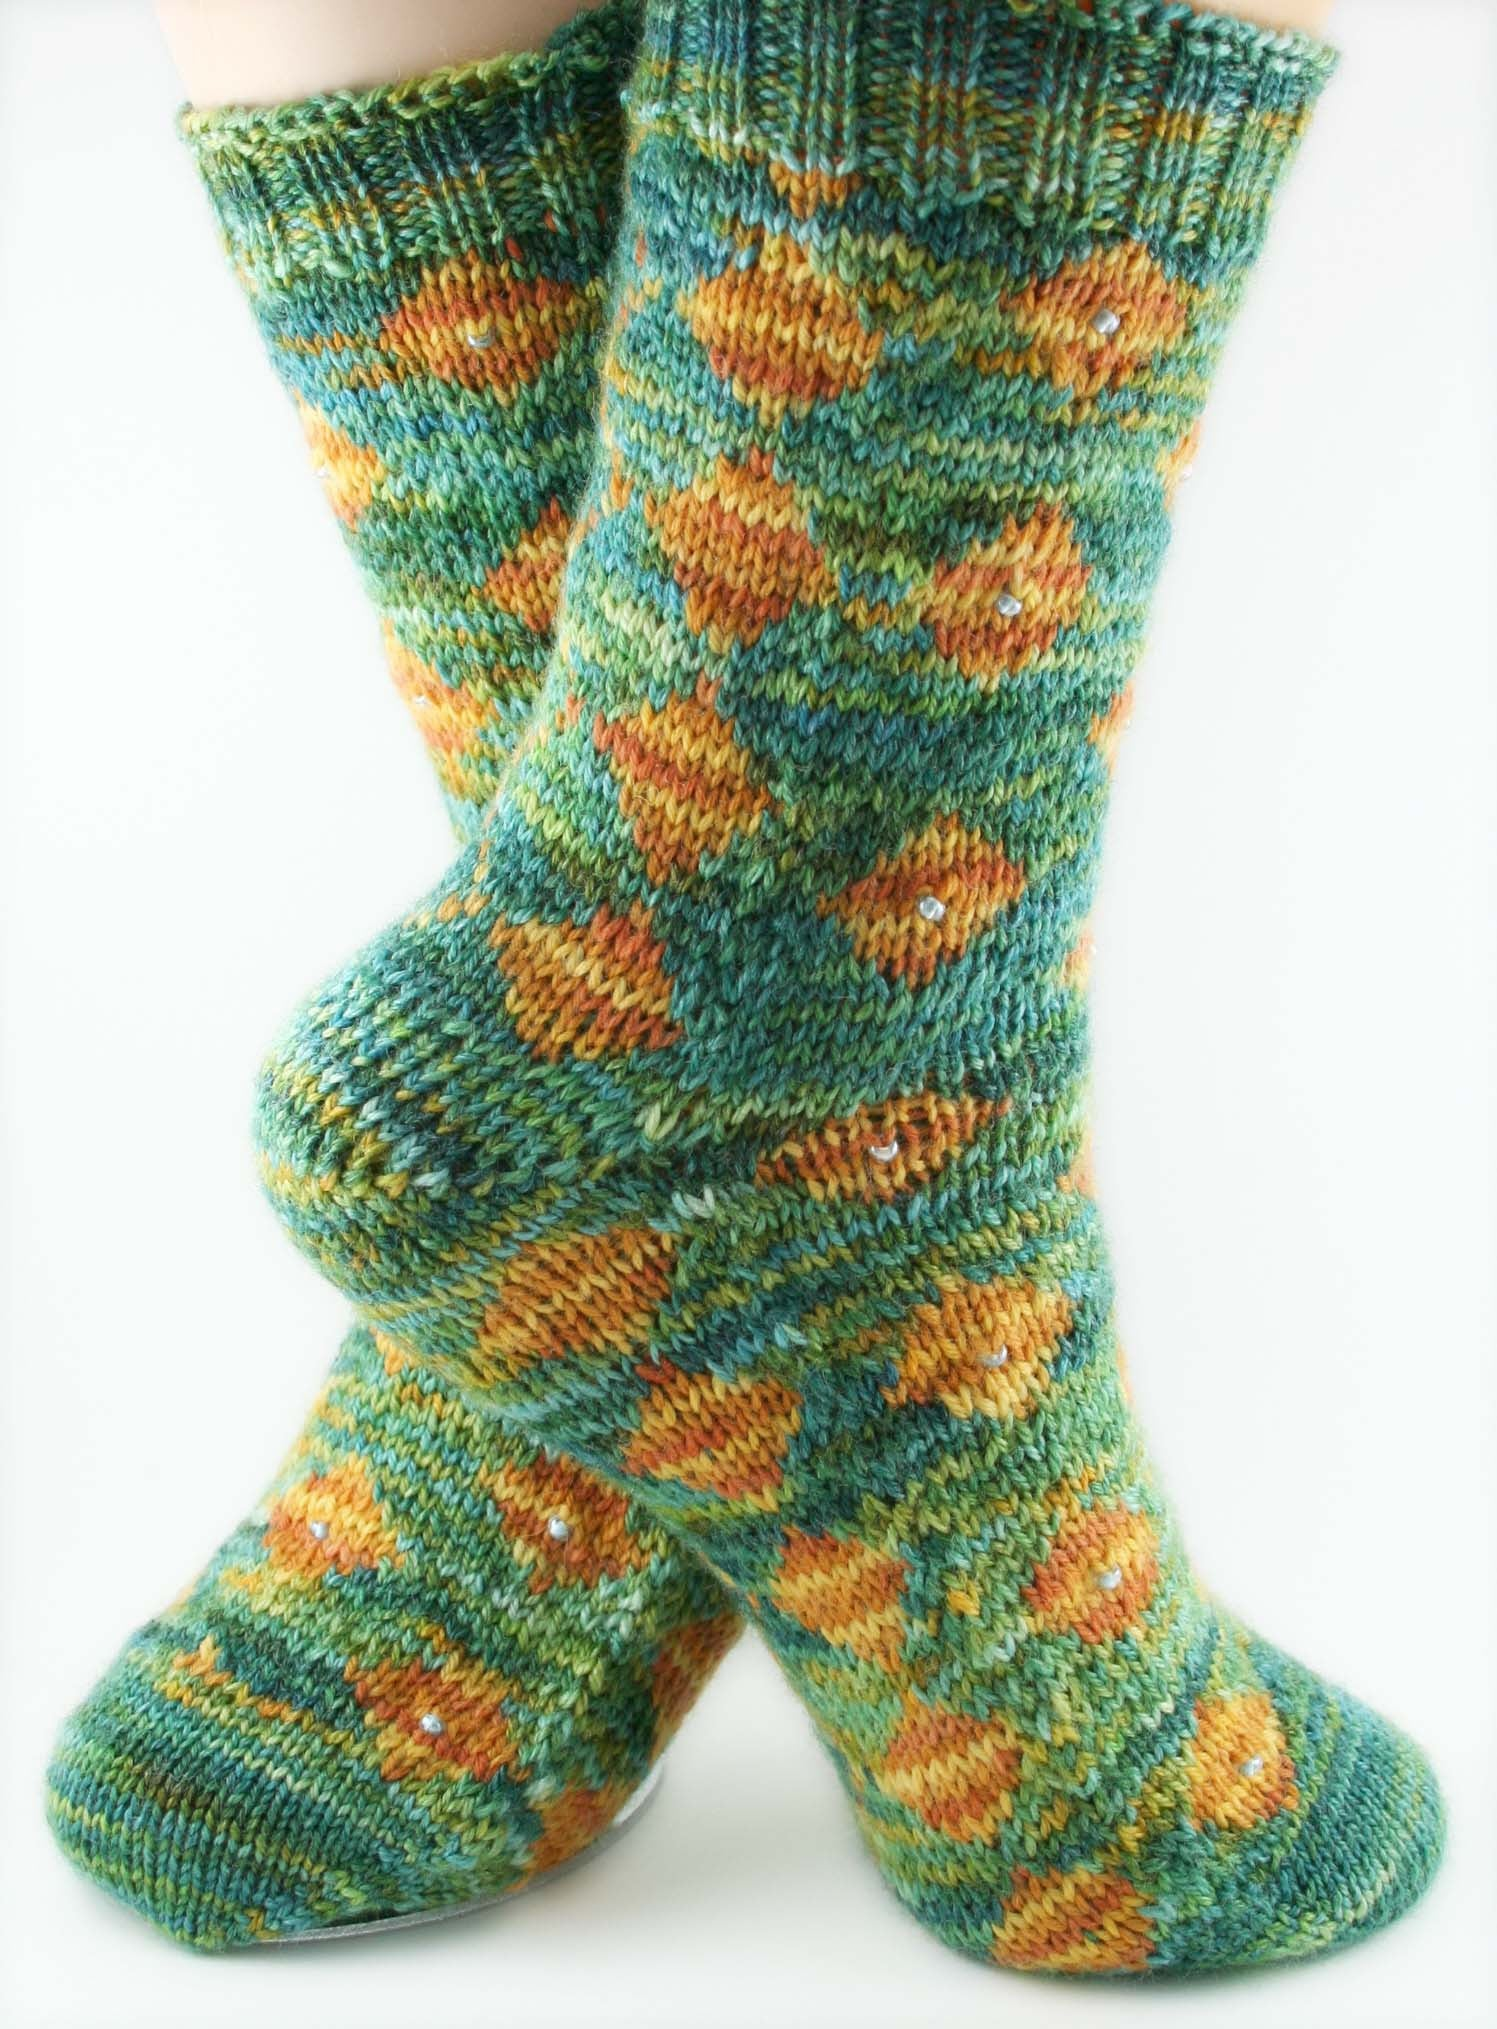 KNITTING PATTERN for Desiree Diamond Socks - Charted Sock pattern - digital download - Colorwork Stranded knitting